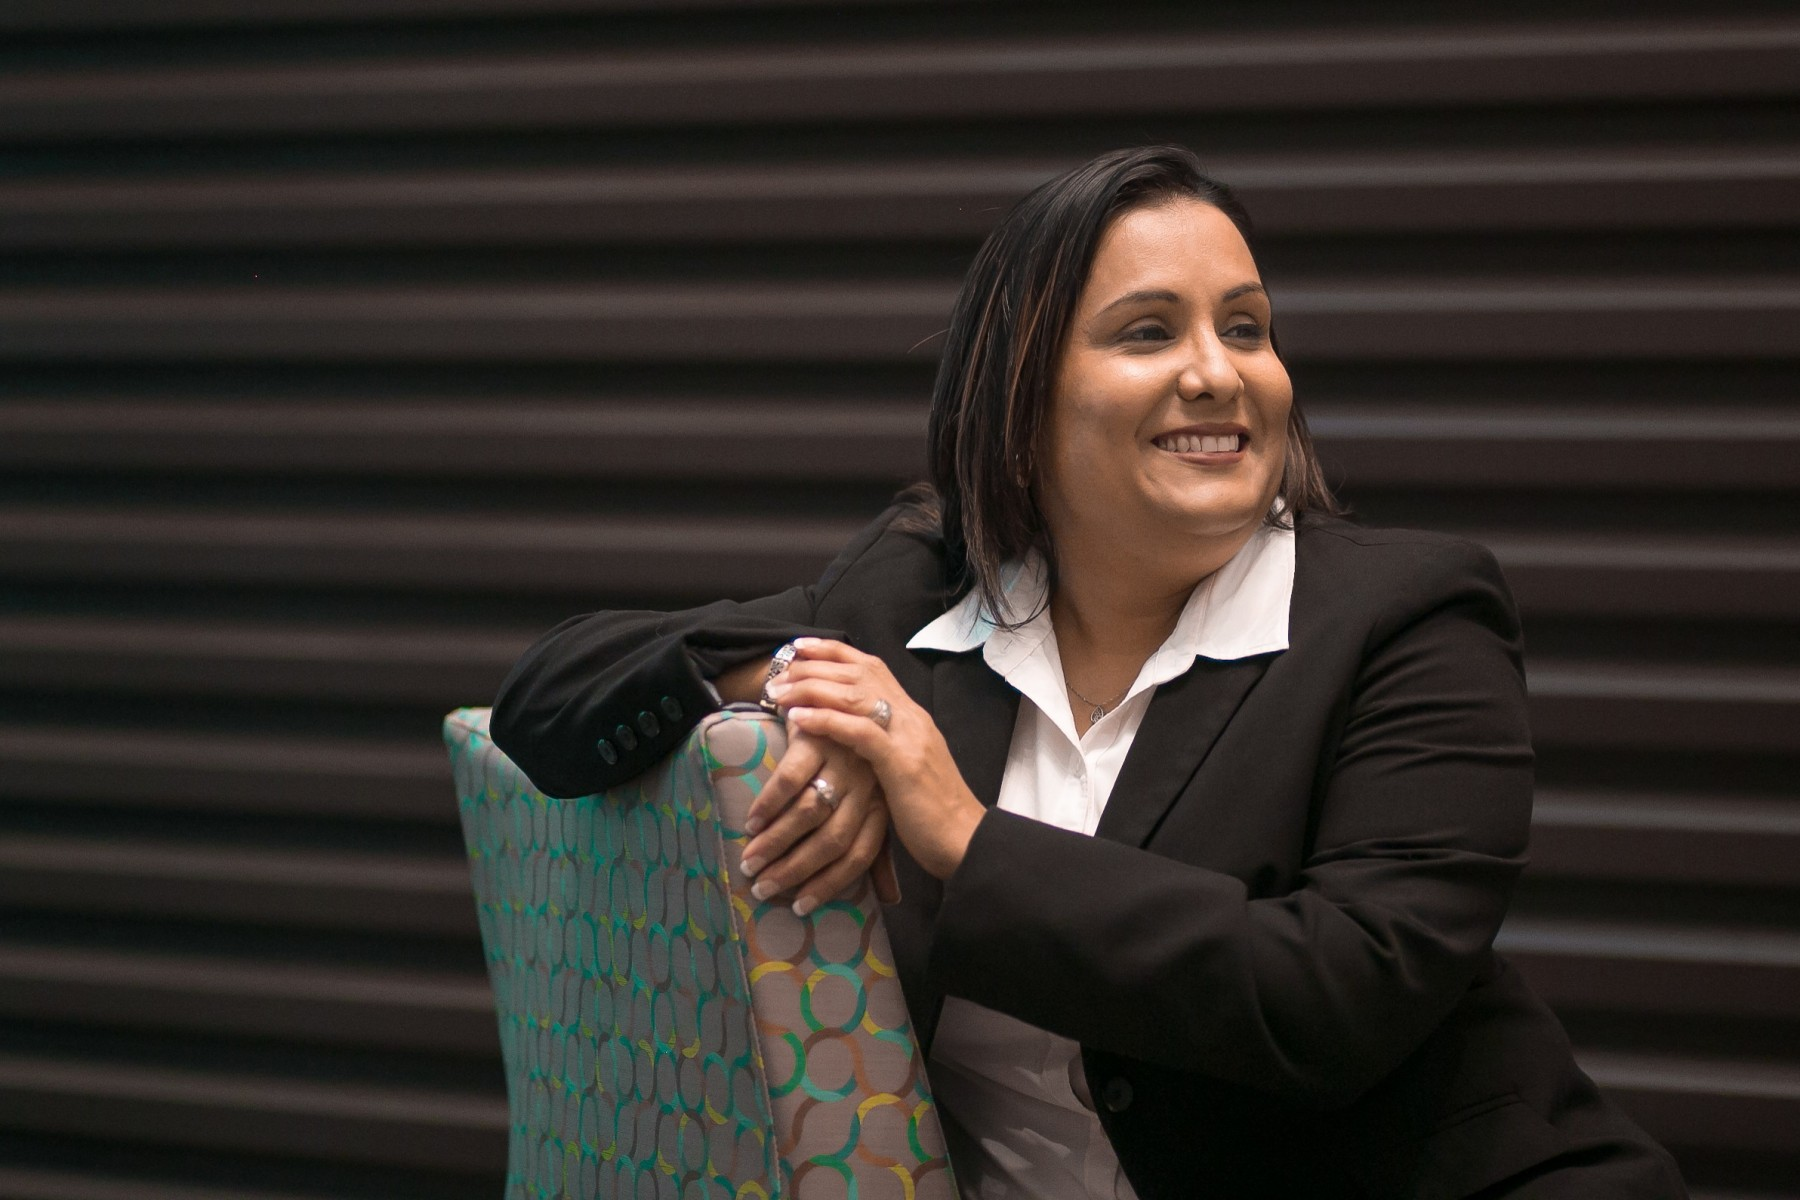 graciela diaz receives the best gift this holiday season earns